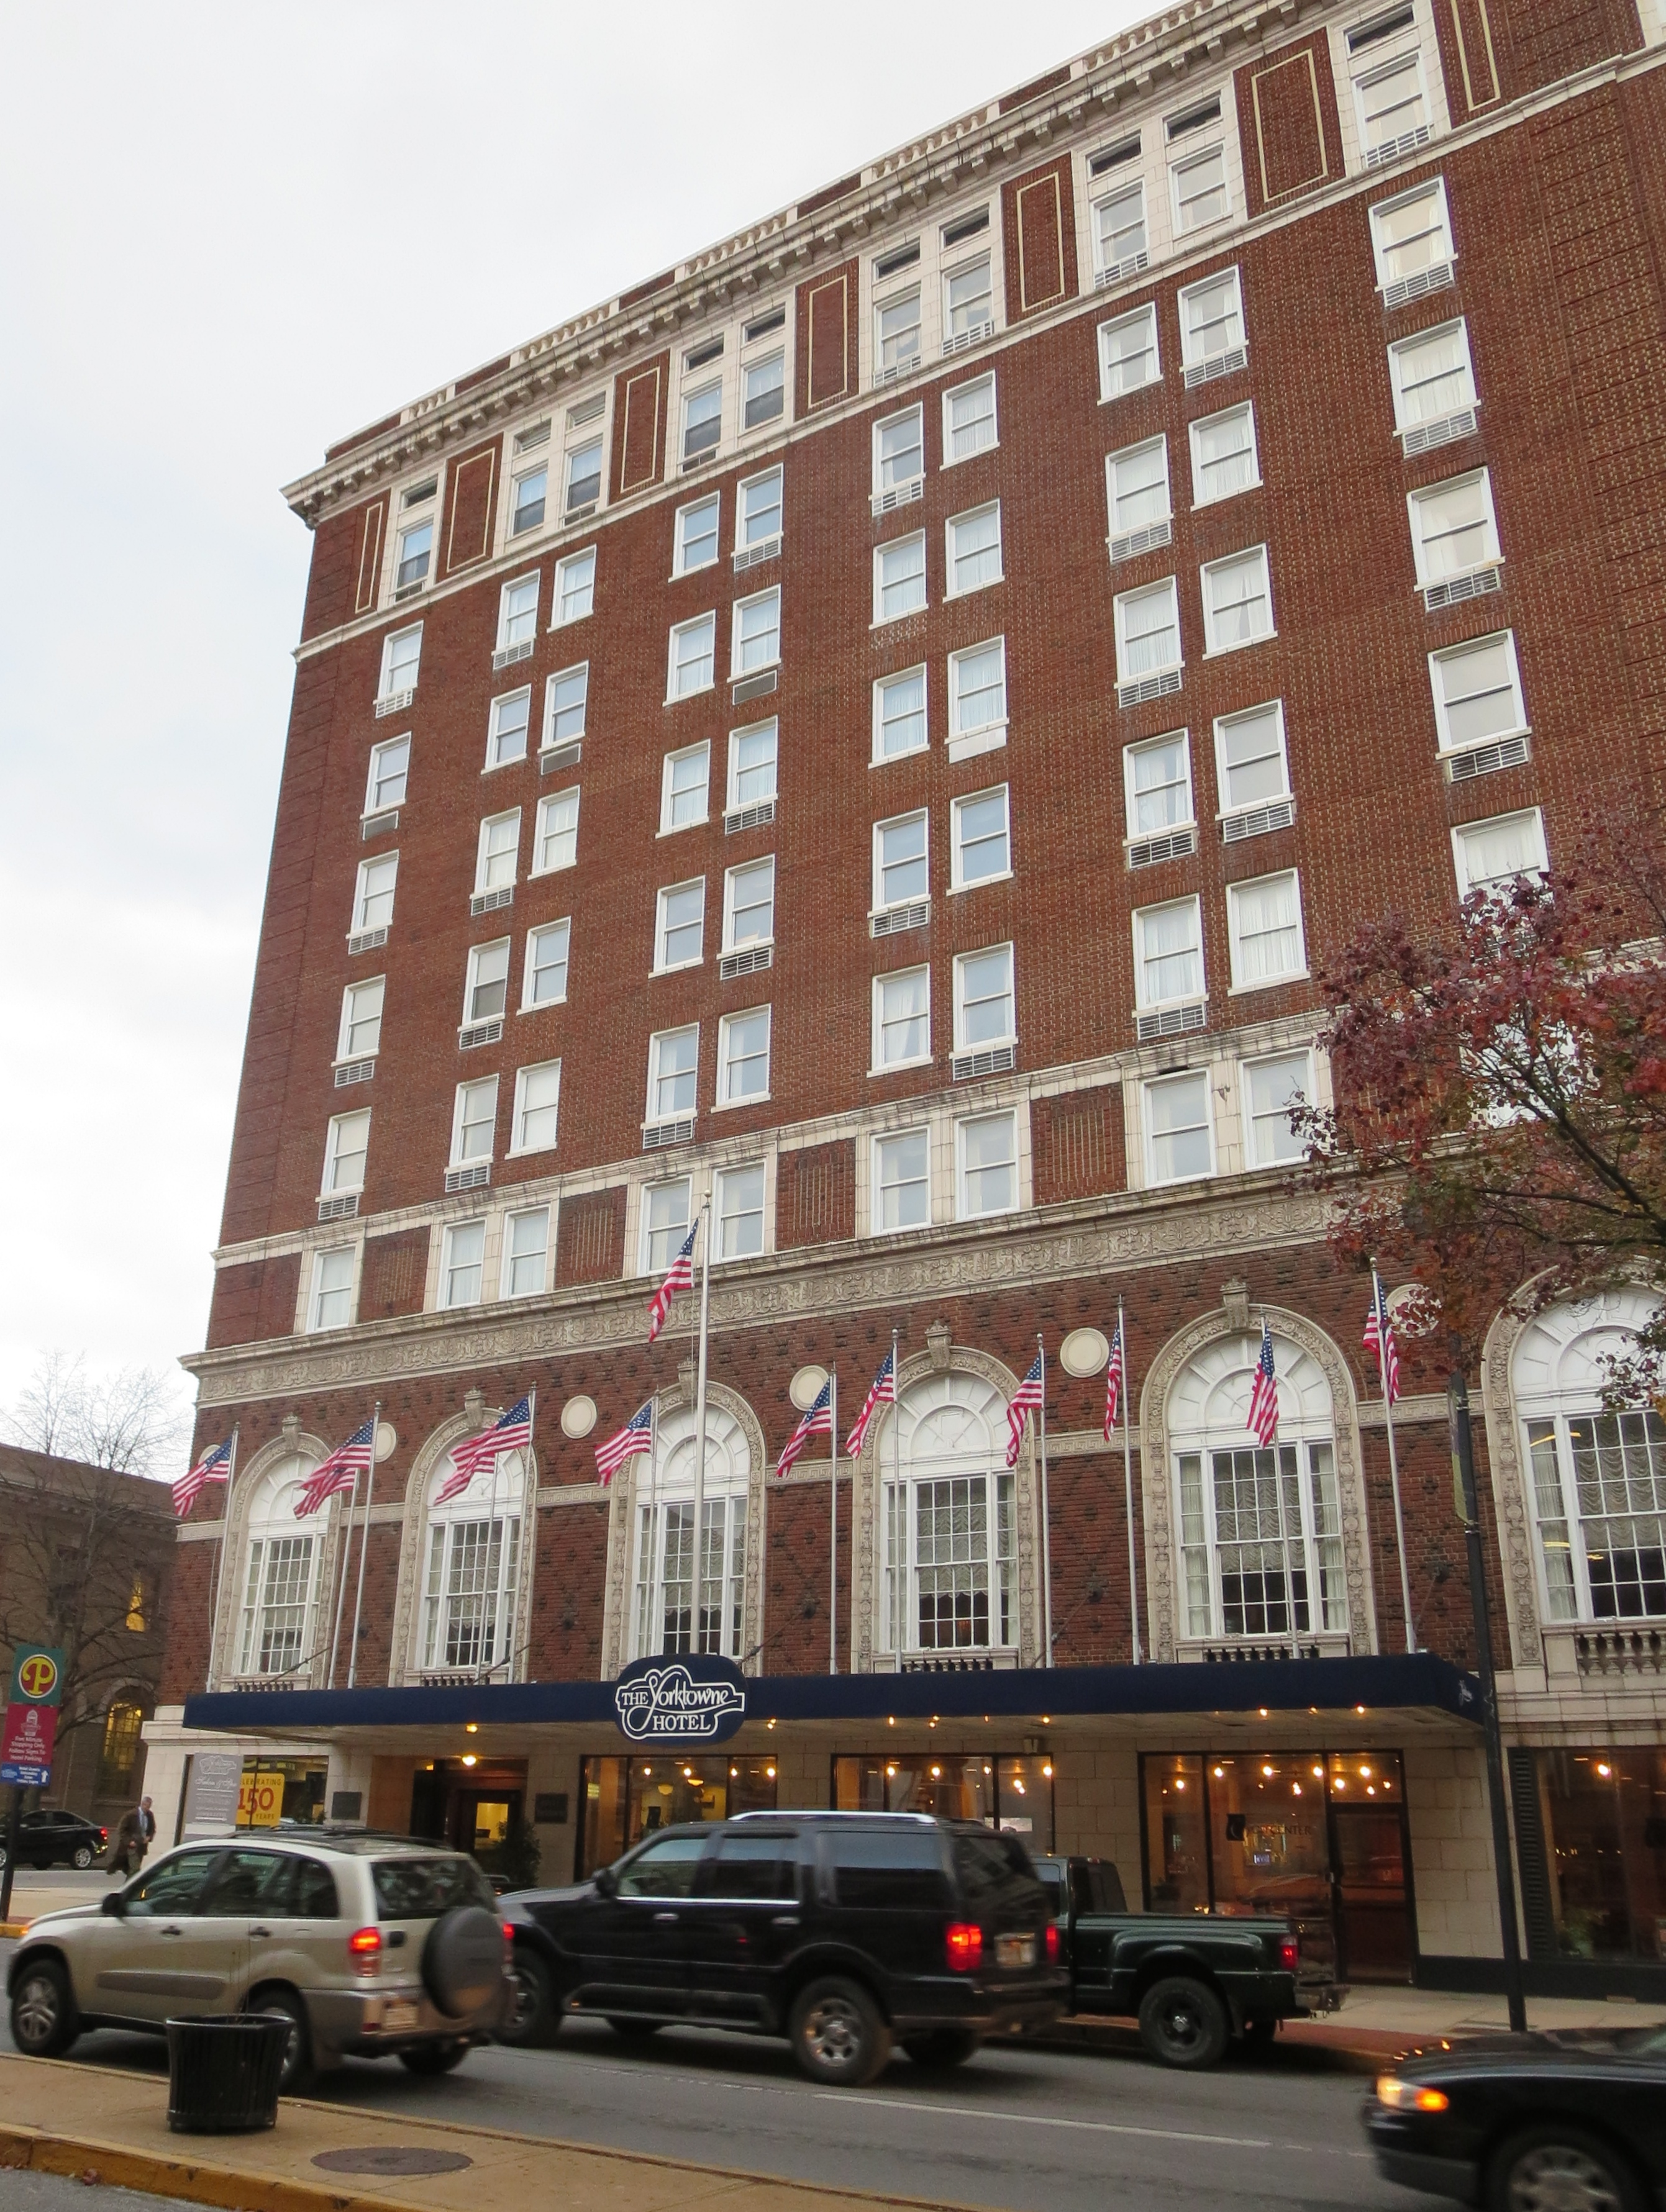 The yorktowne hotel in york pa exists in a time warp for Pennsylvania hotel new york haunted